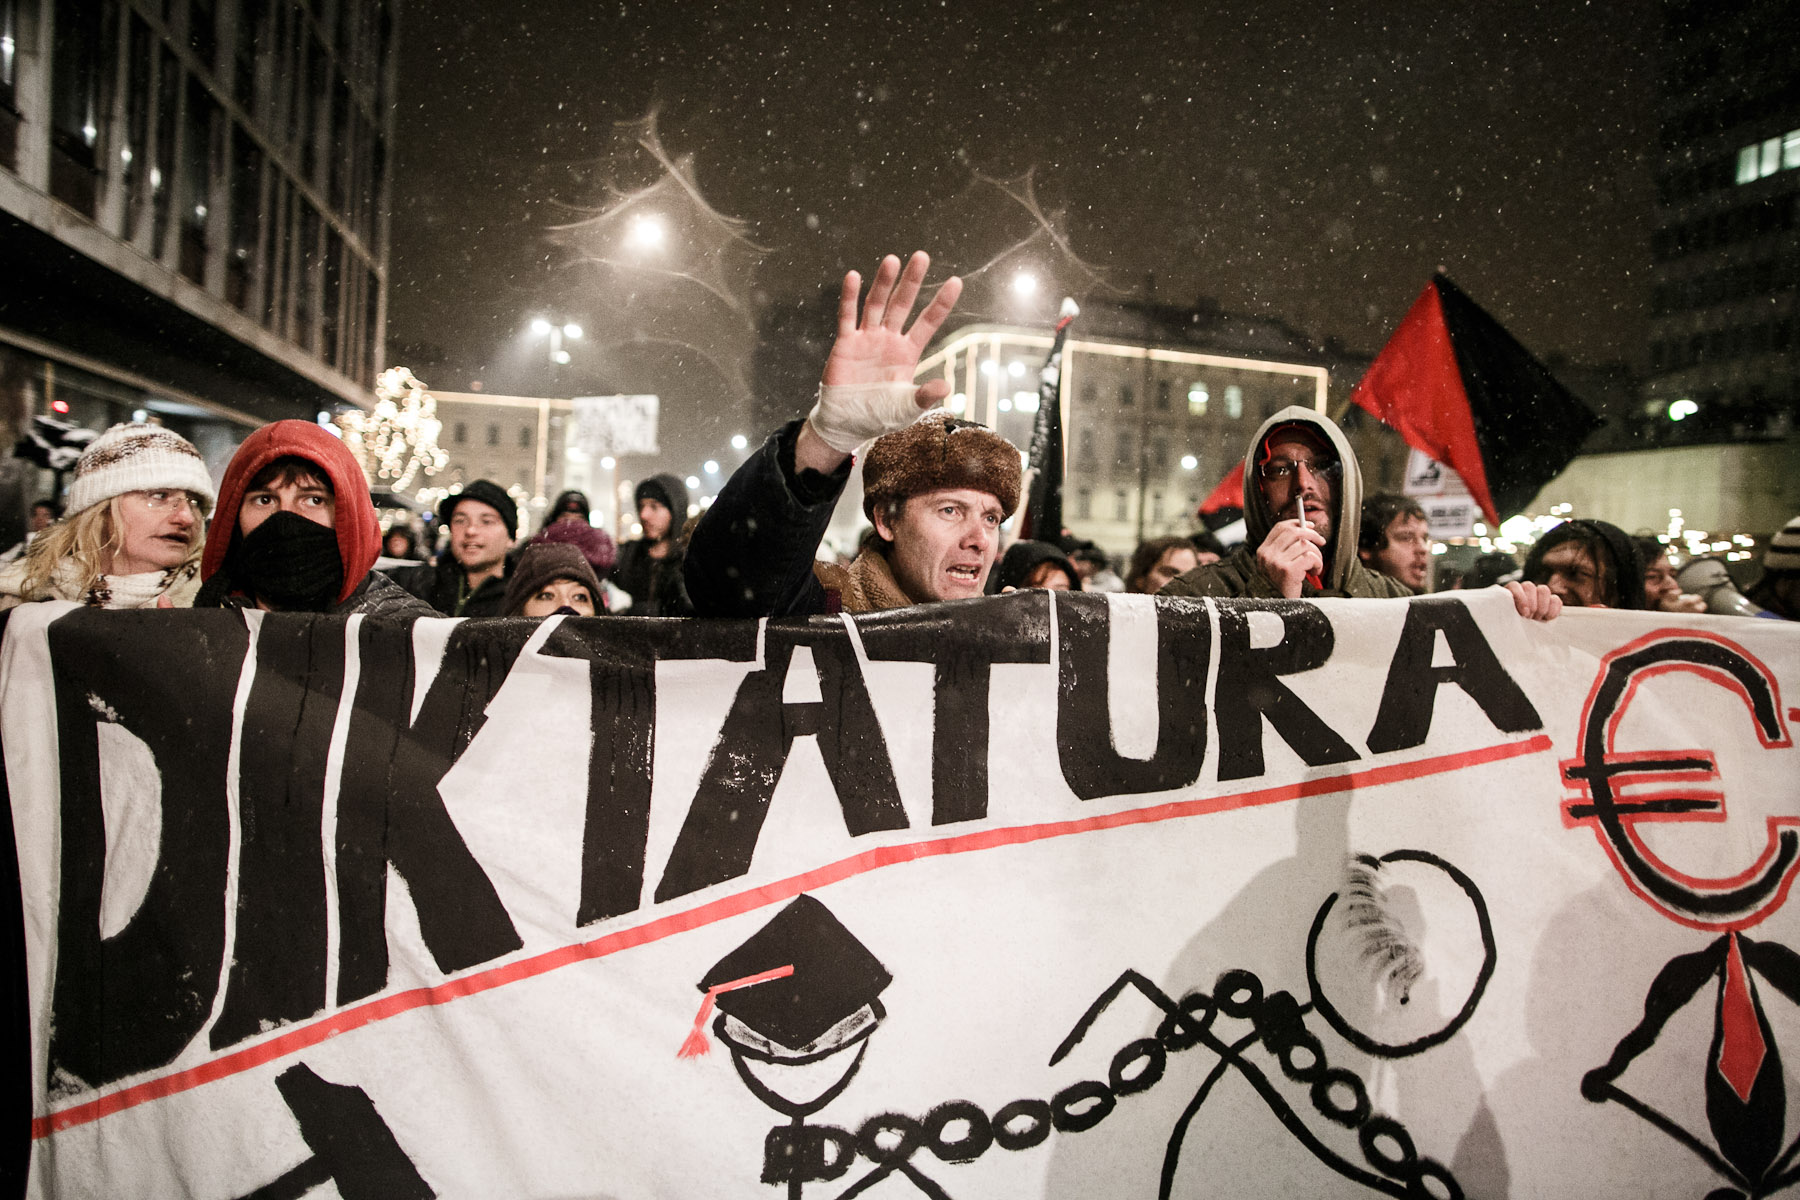 Protesters carry a large sign denouncing dictatorship of capitalism during anti-government protests on December 7 in Ljubljana, Slovenia.